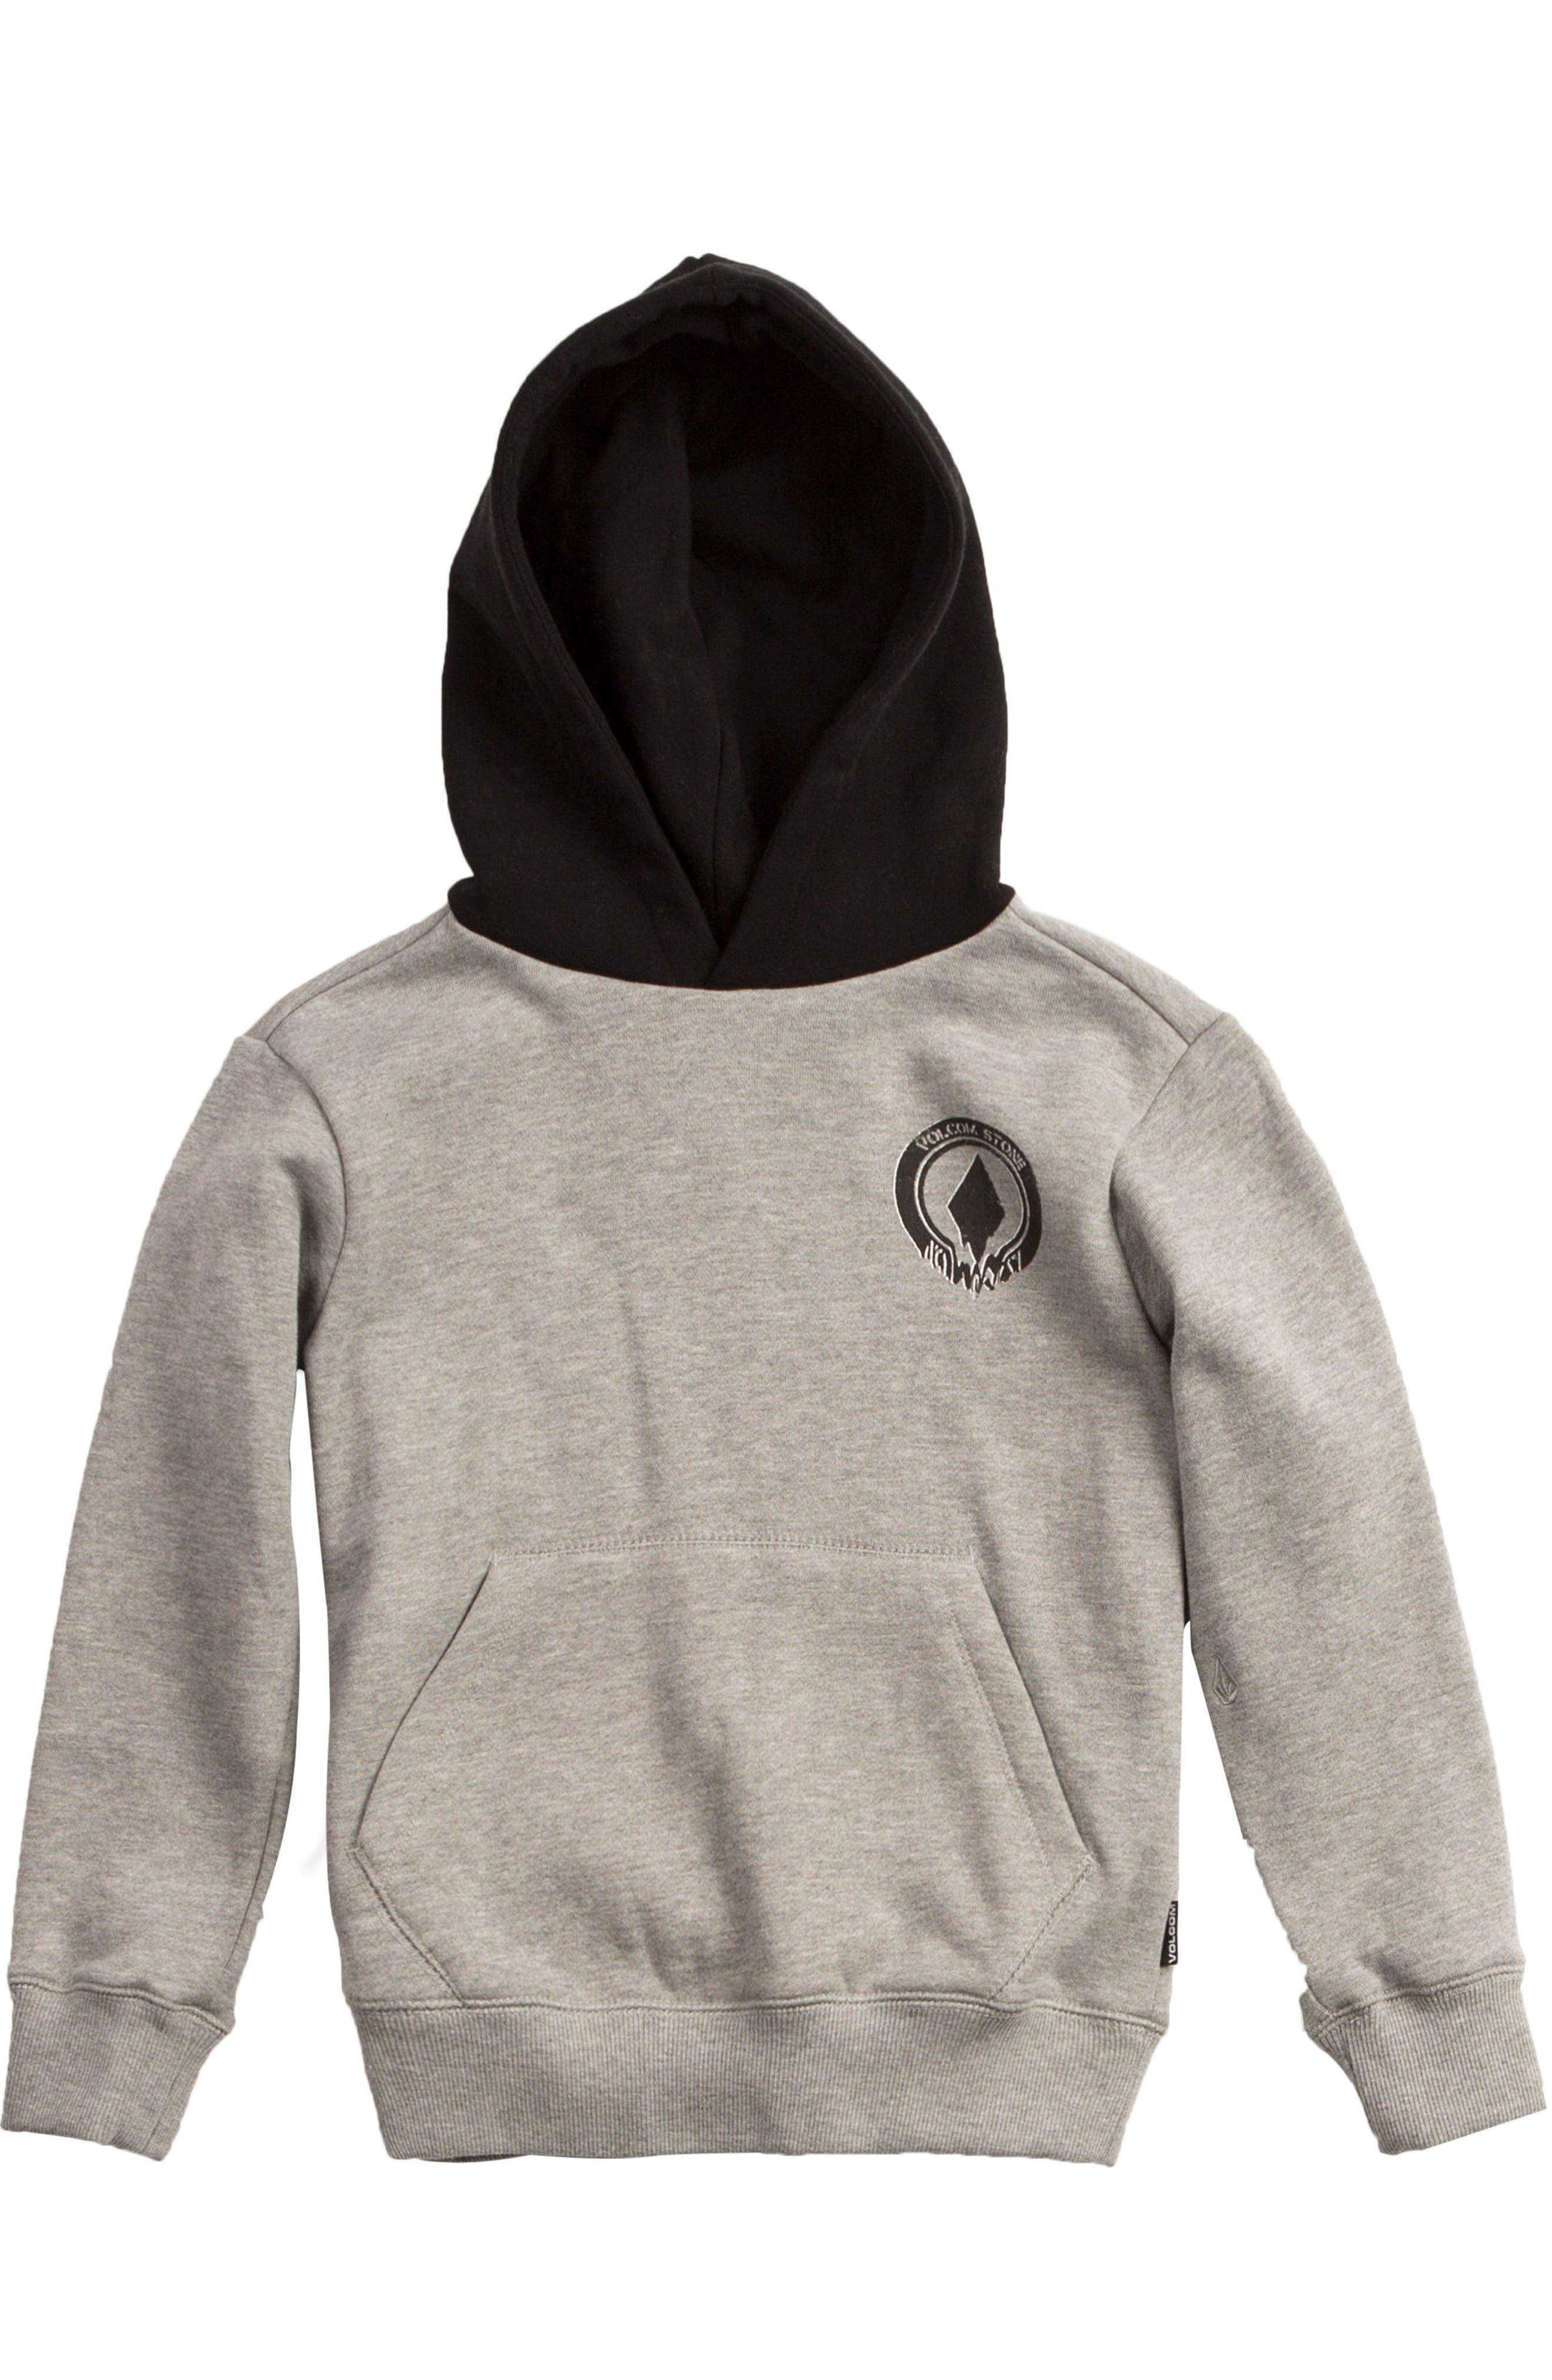 Supply Stone Graphic Pullover Hoodie,                         Main,                         color, 020